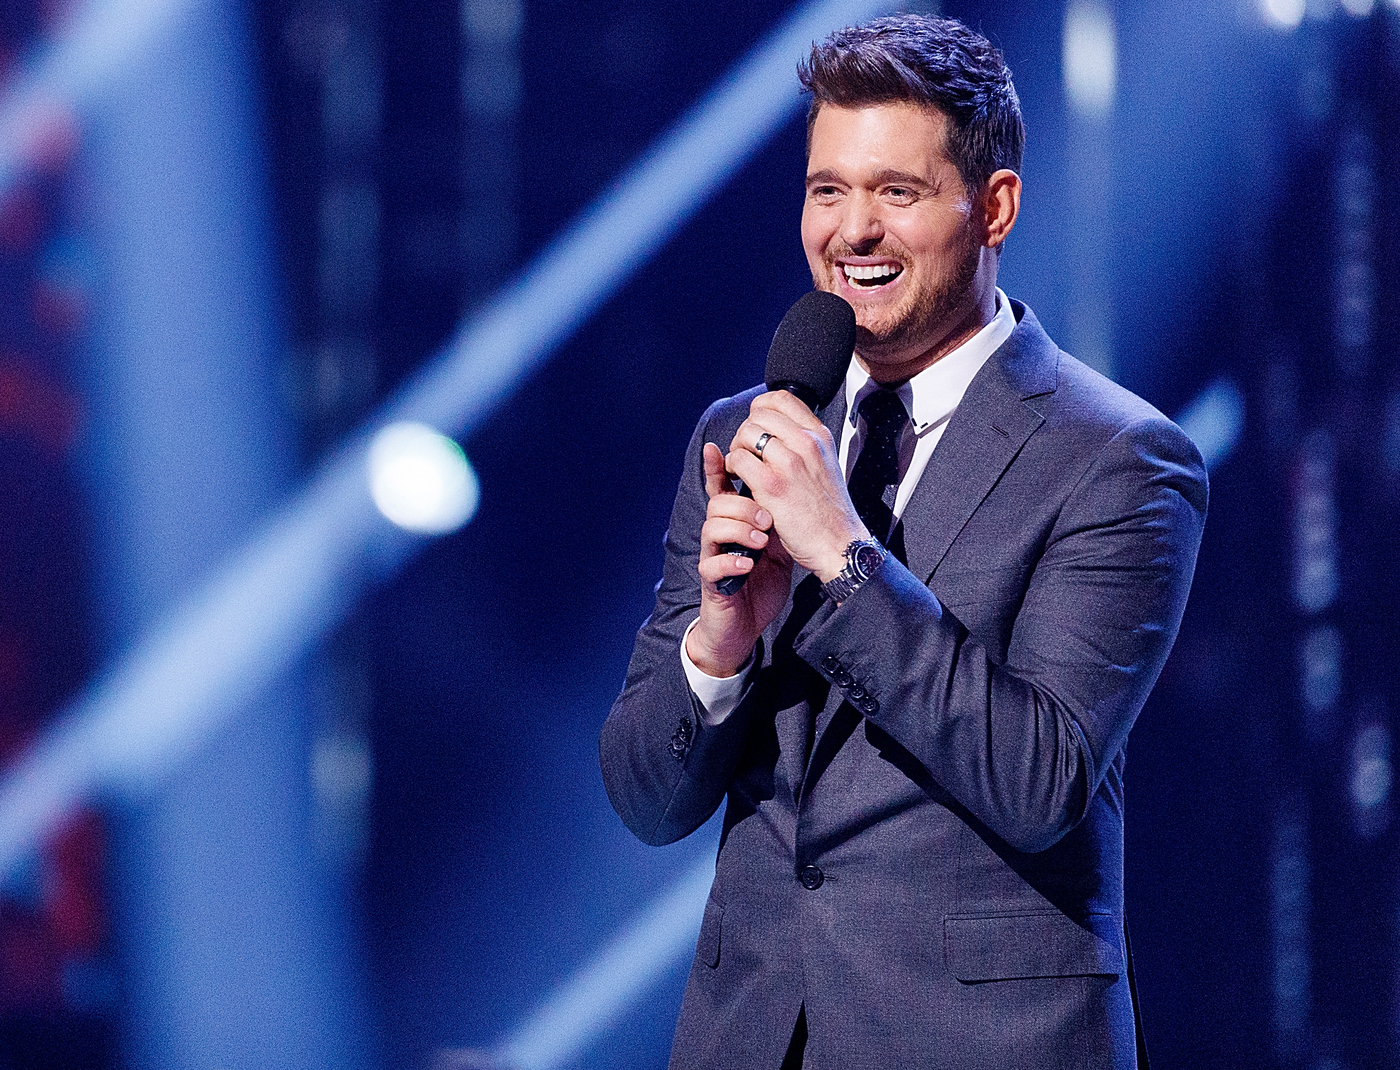 Fans Concern For Michael Buble During X Factor Appearance